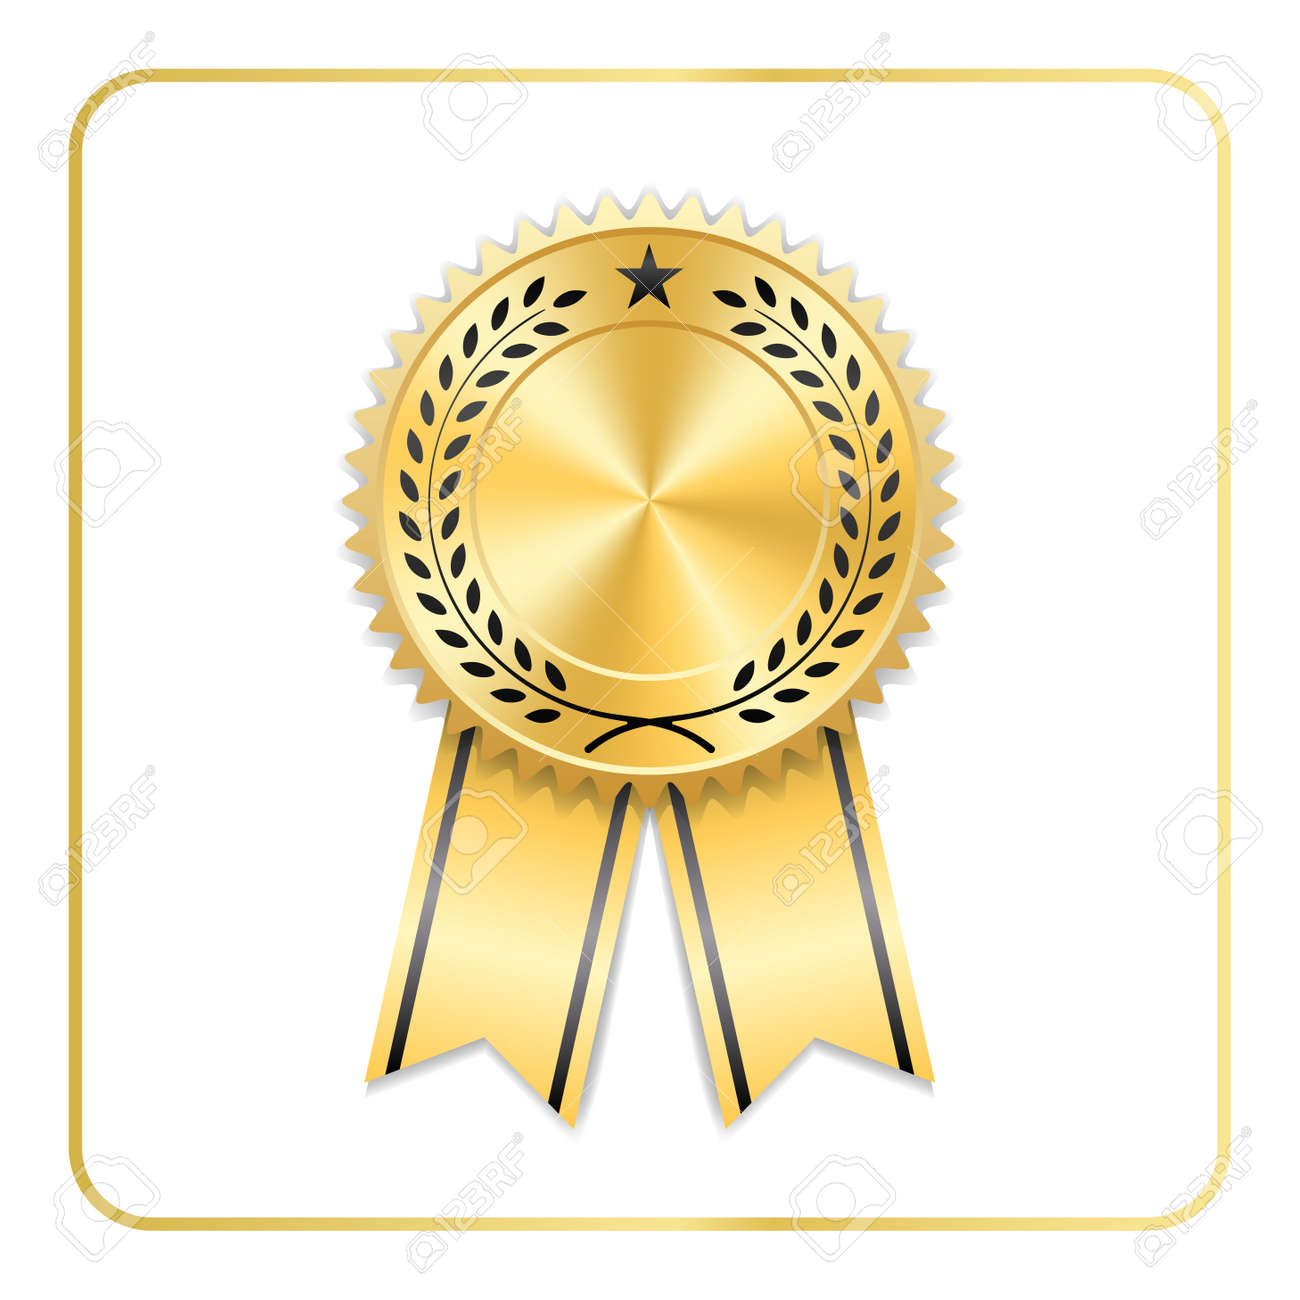 award ribbon gold icon blank medal with laurel wreath isolated